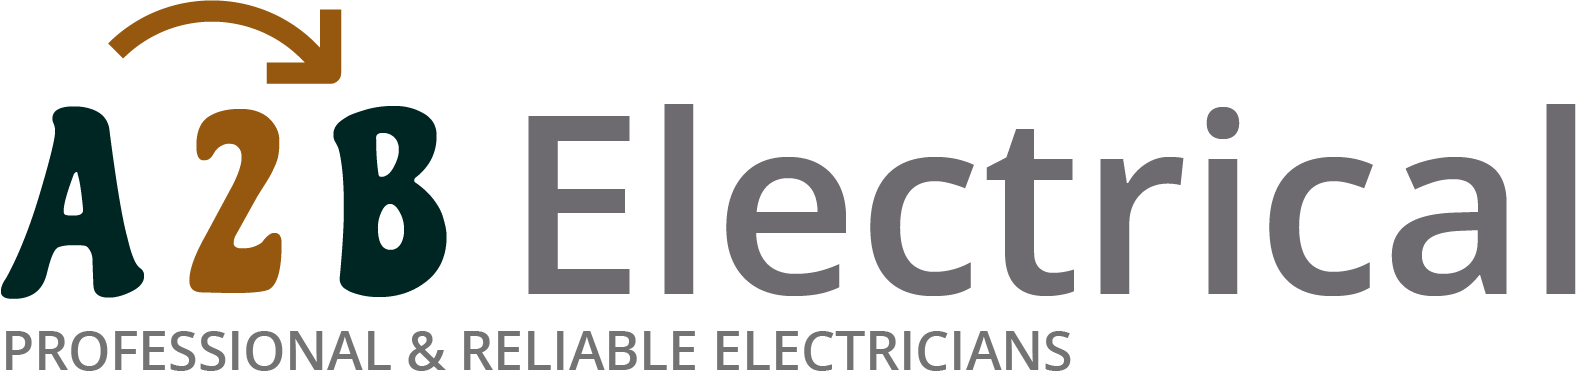 If you have electrical wiring problems in Wembley, we can provide an electrician to have a look for you.